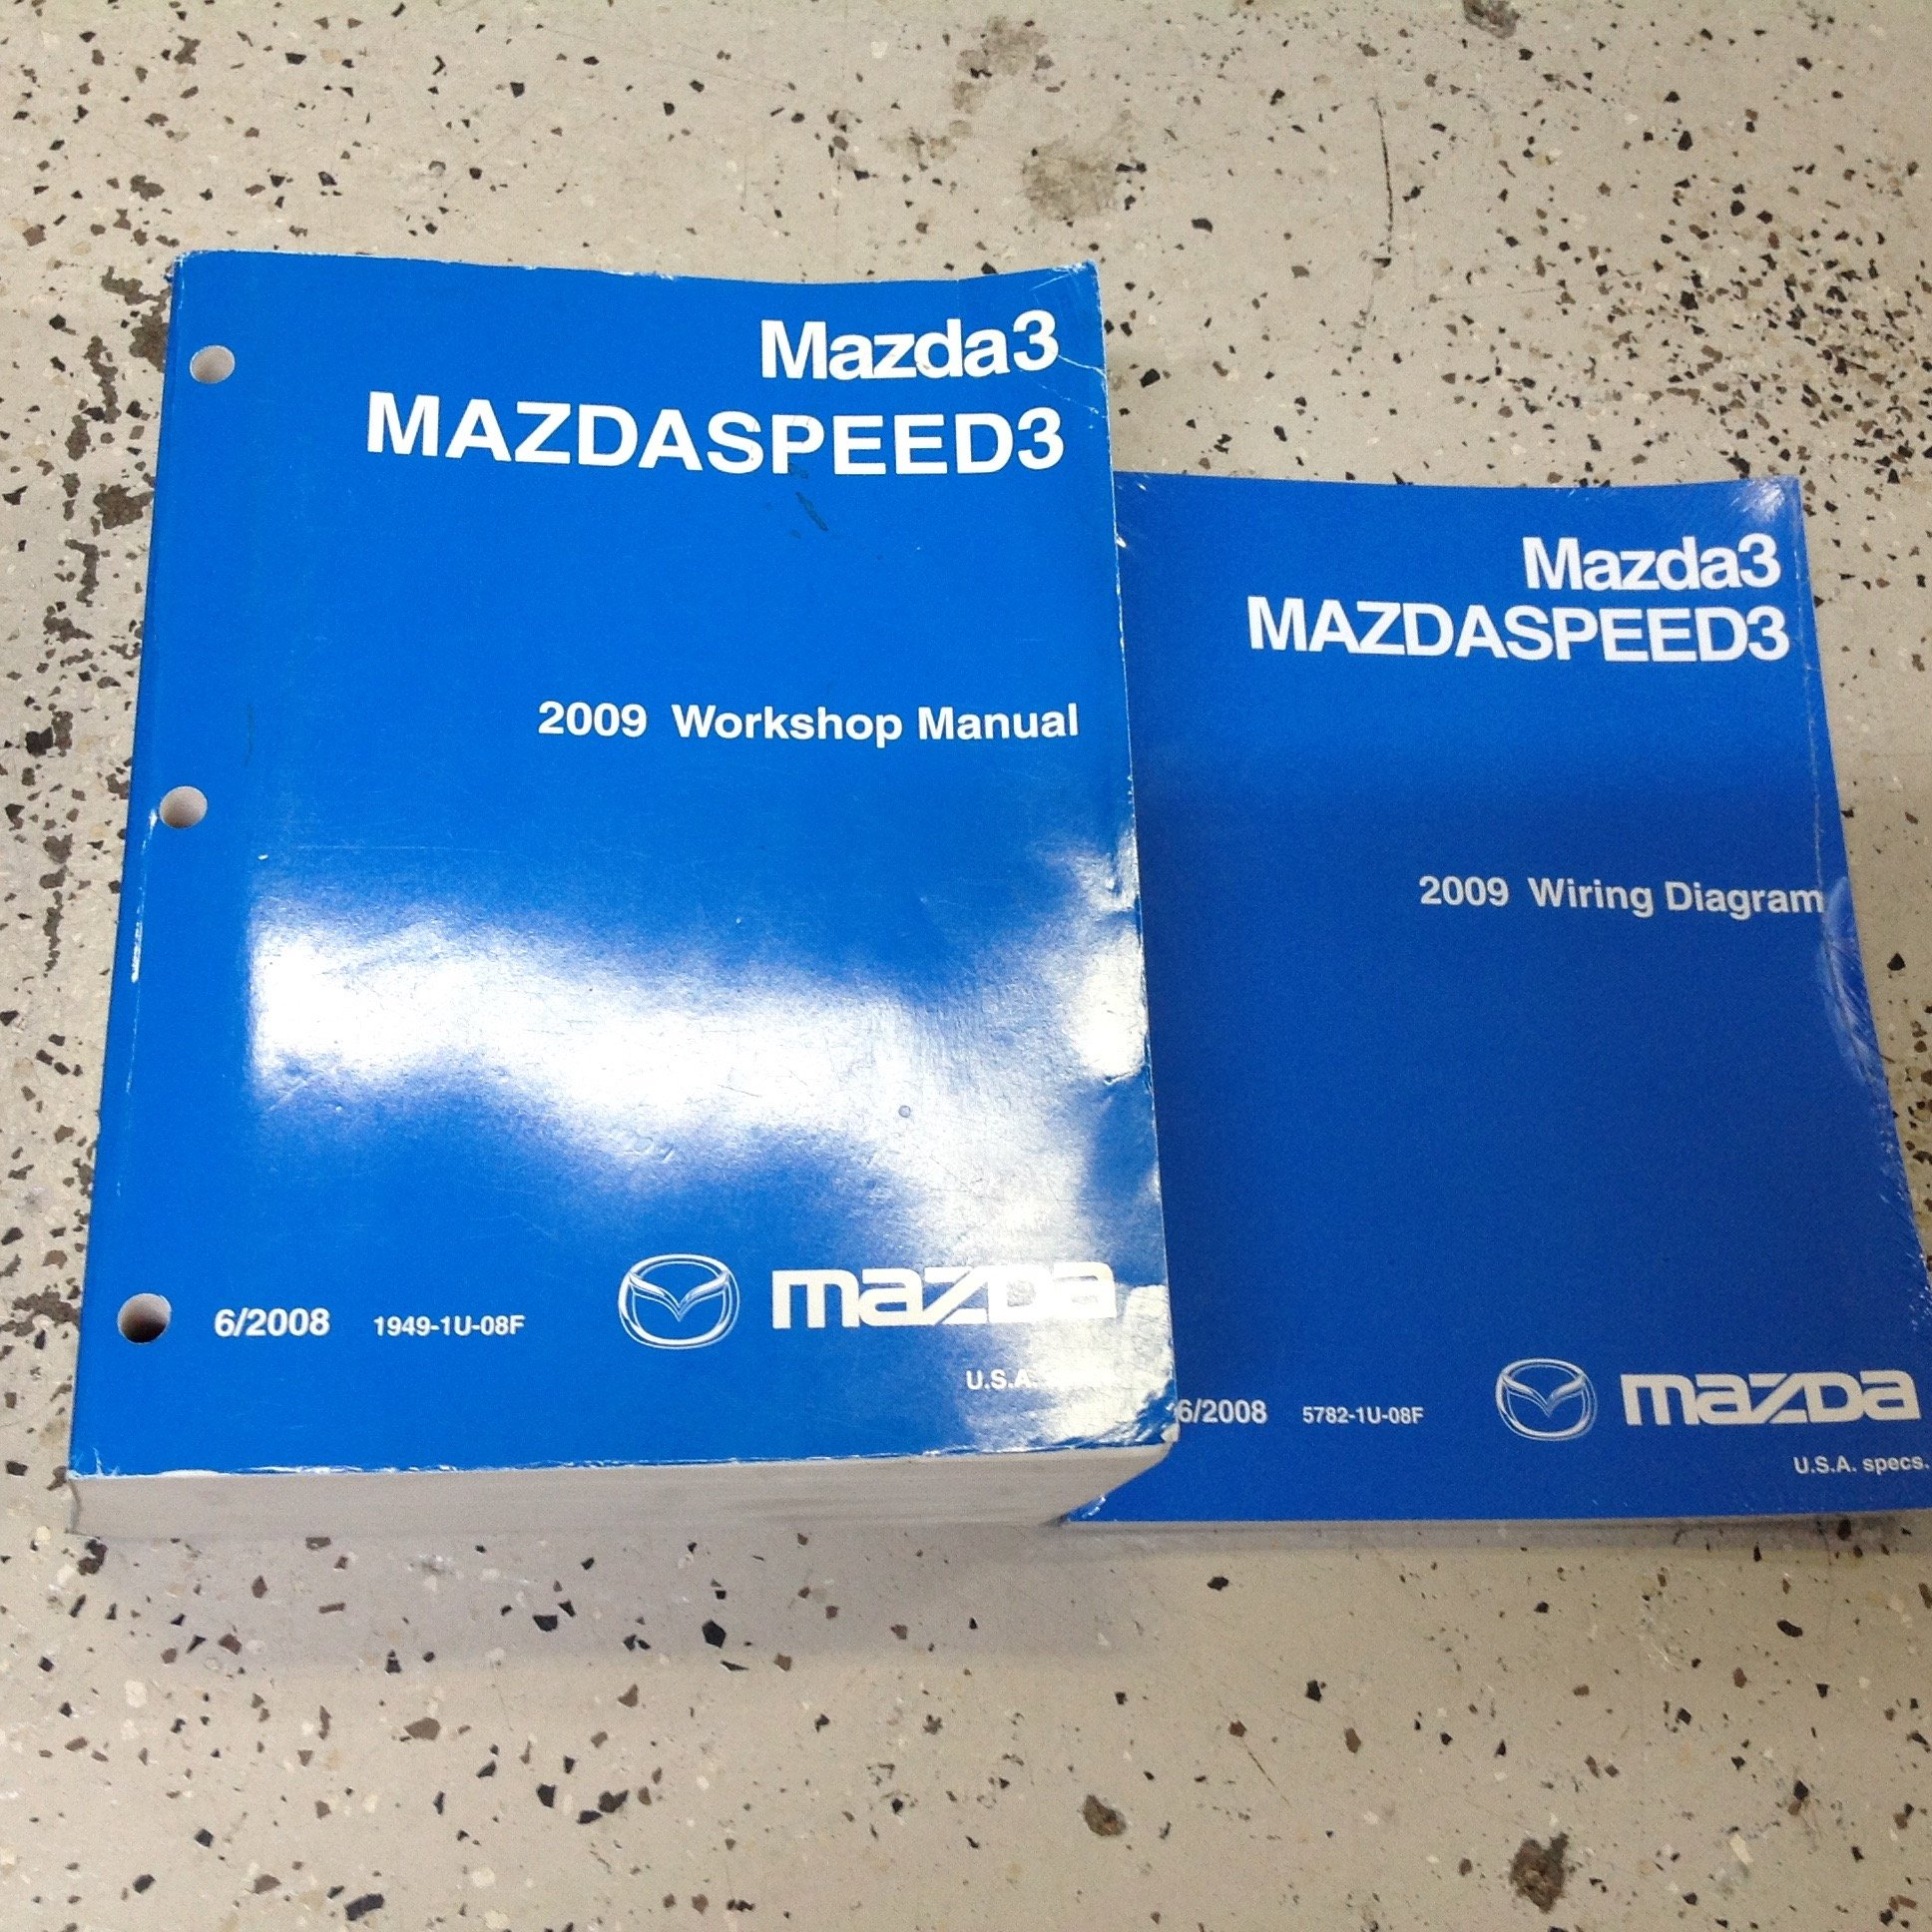 2009 mazda mazda 3 mazdaspeed3 workshop service shop repair manual rh amazon com 2007 Mazdaspeed 3 2009 Mazdaspeed 3 Turbo